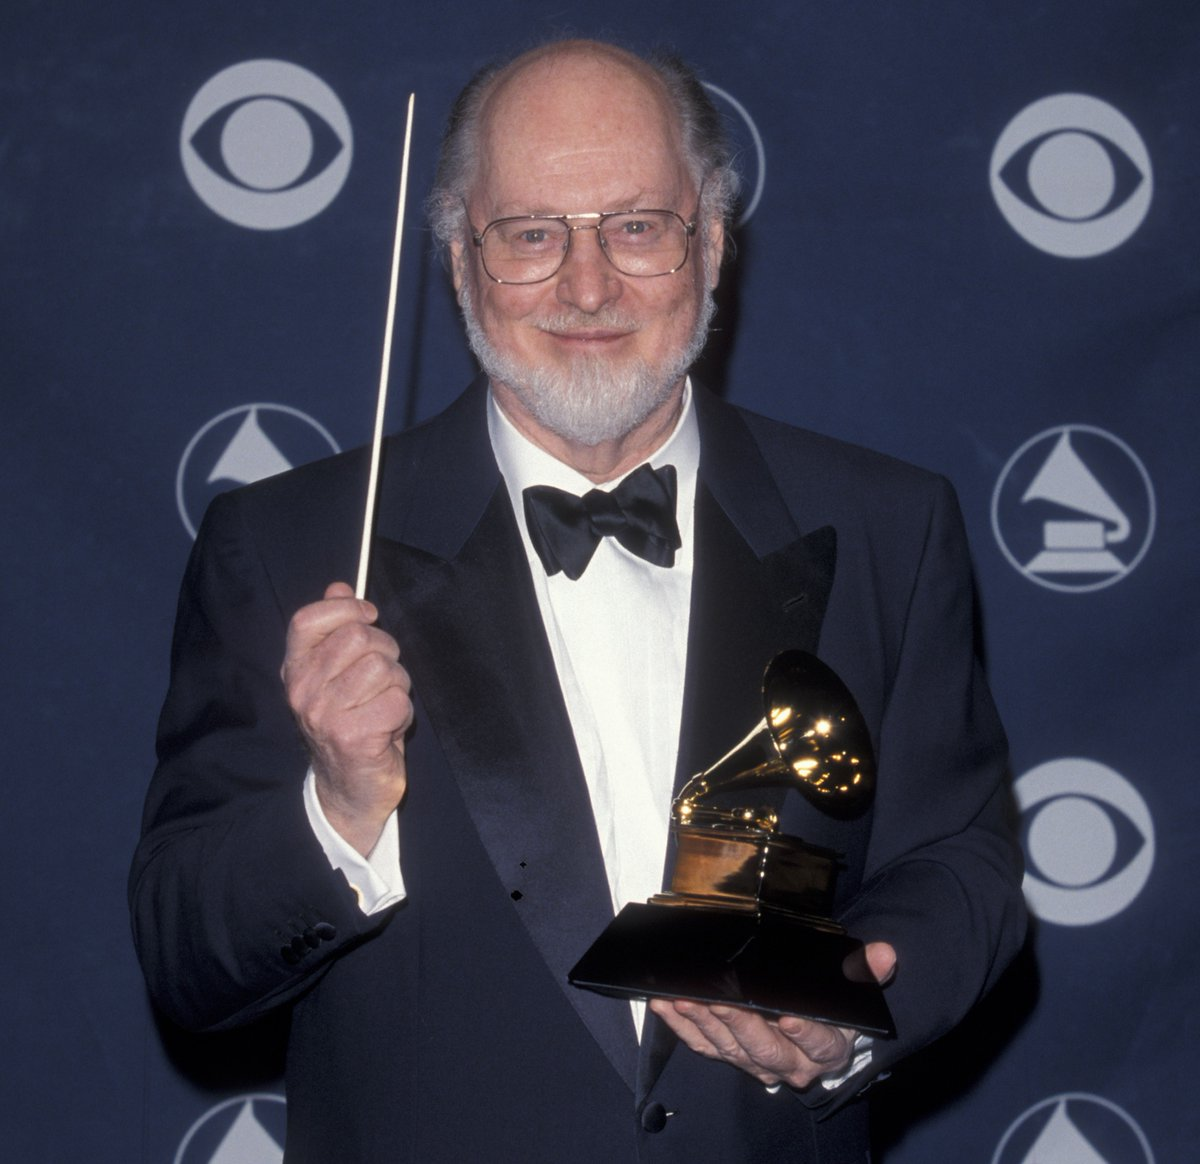 """""""Any working #composer or #painter or #sculptor will tell you that inspiration comes at the eighth hour of labor rather than as a bolt out of the blue."""" - Twenty-five time GRAMMY-winning composer, #JohnWilliams 🎵"""